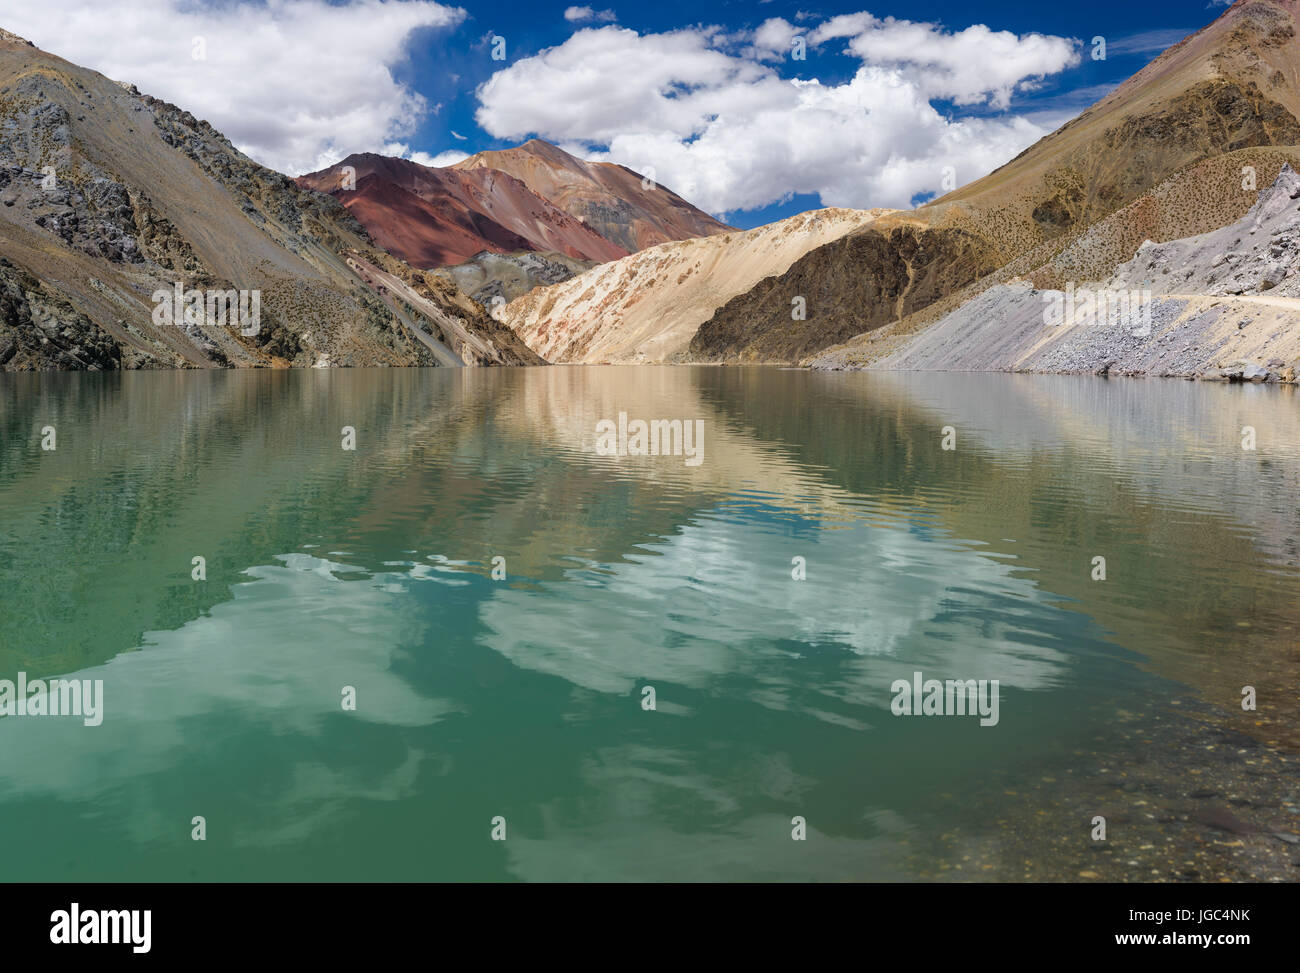 Agua Negra Pass, Andes, Argentine, Chili Photo Stock